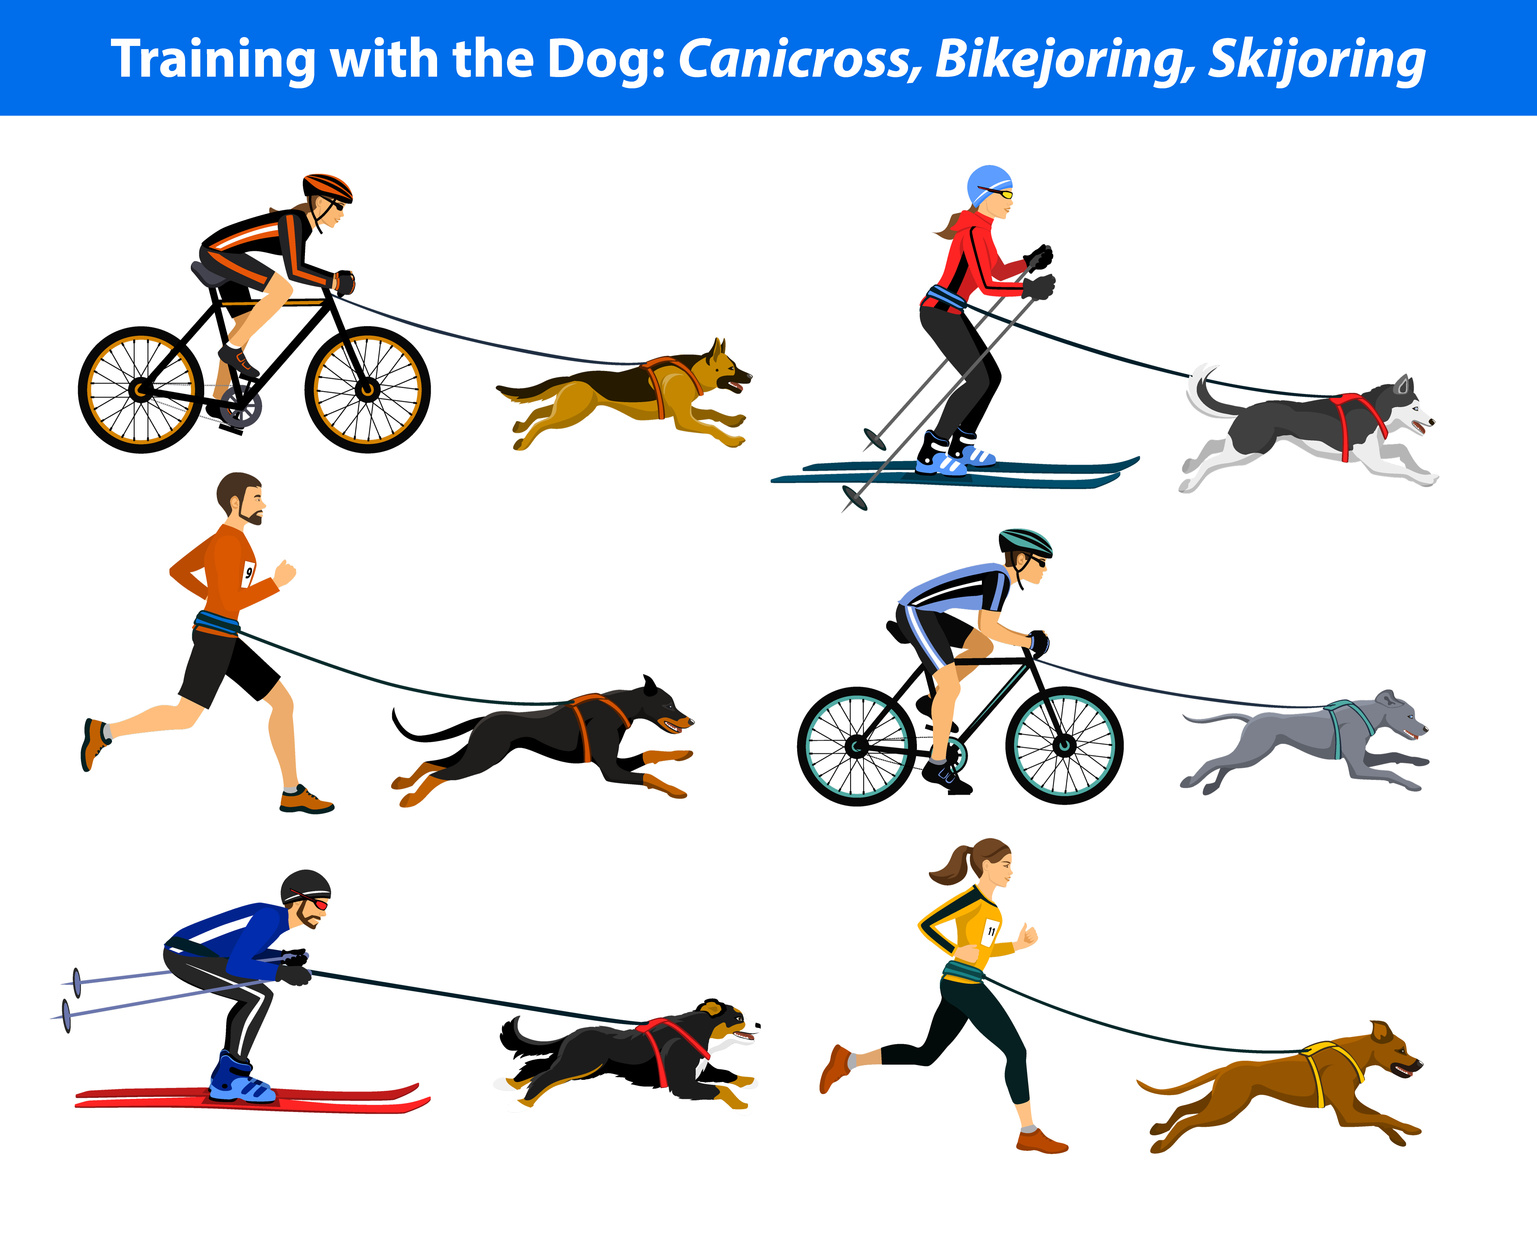 Training Exercising with dog: canicross, bikejoring, skijoring